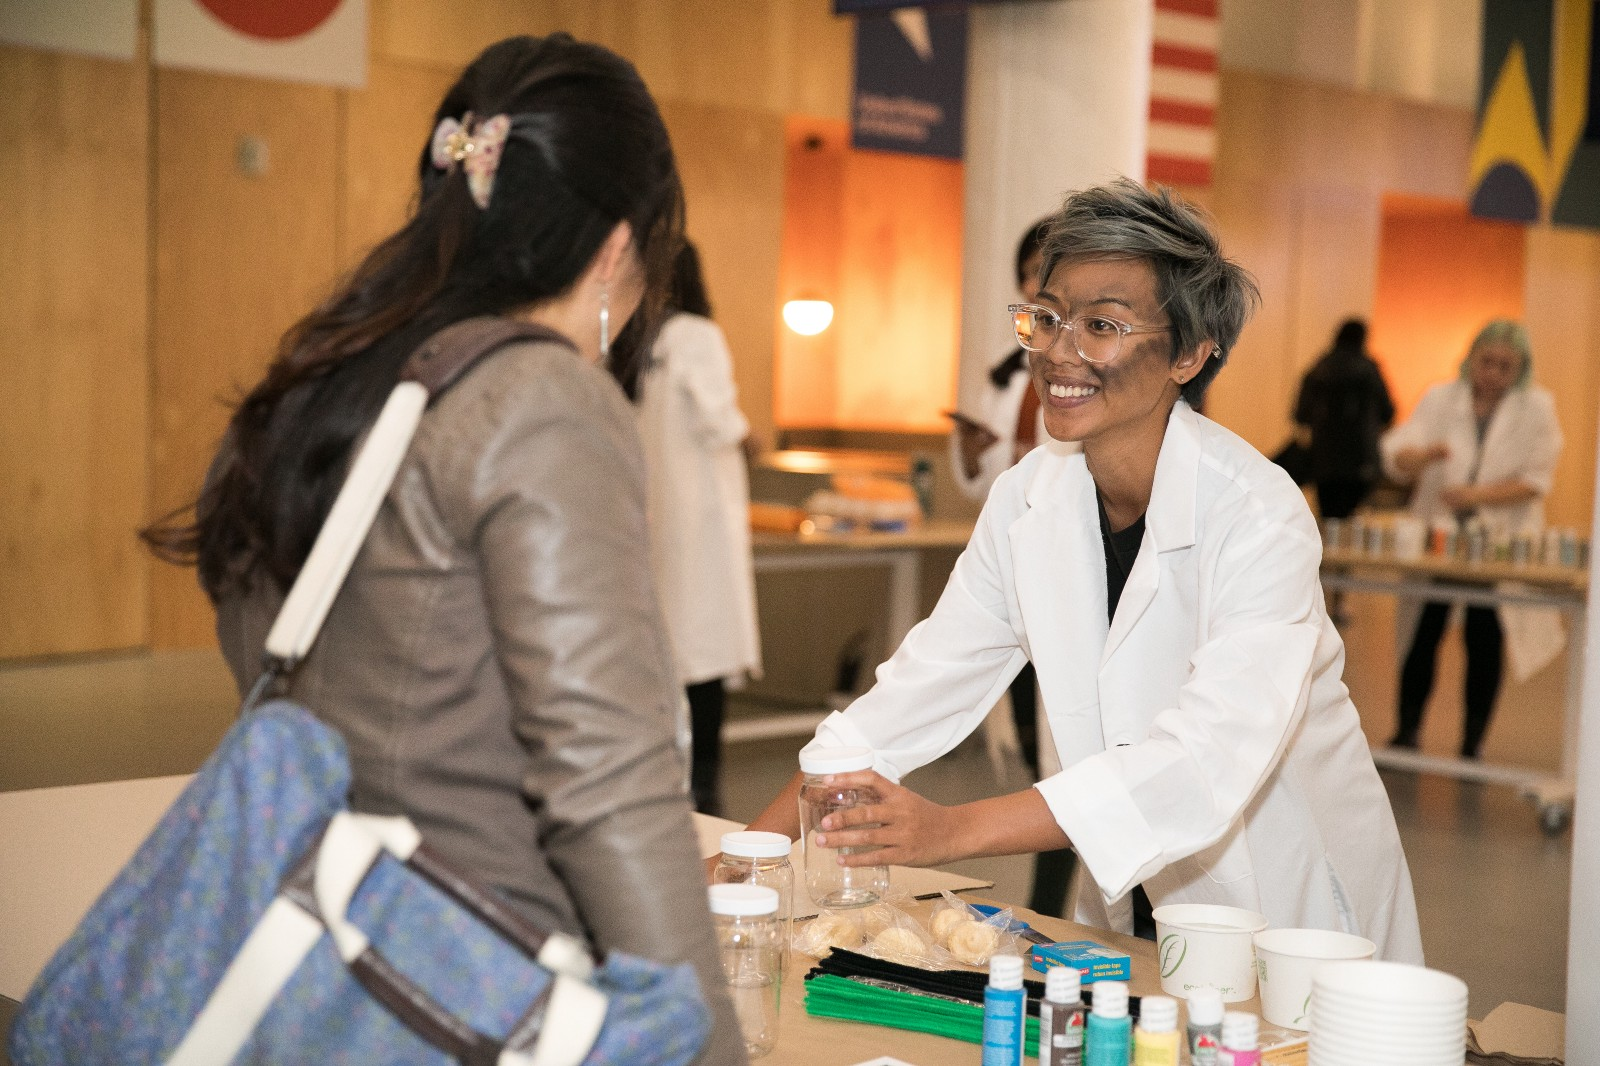 Pinterest employee Evelyn Obamas led four stations for volunteers to make help make carnival games for SOMA Youth Collaborative's Halloween carnival.